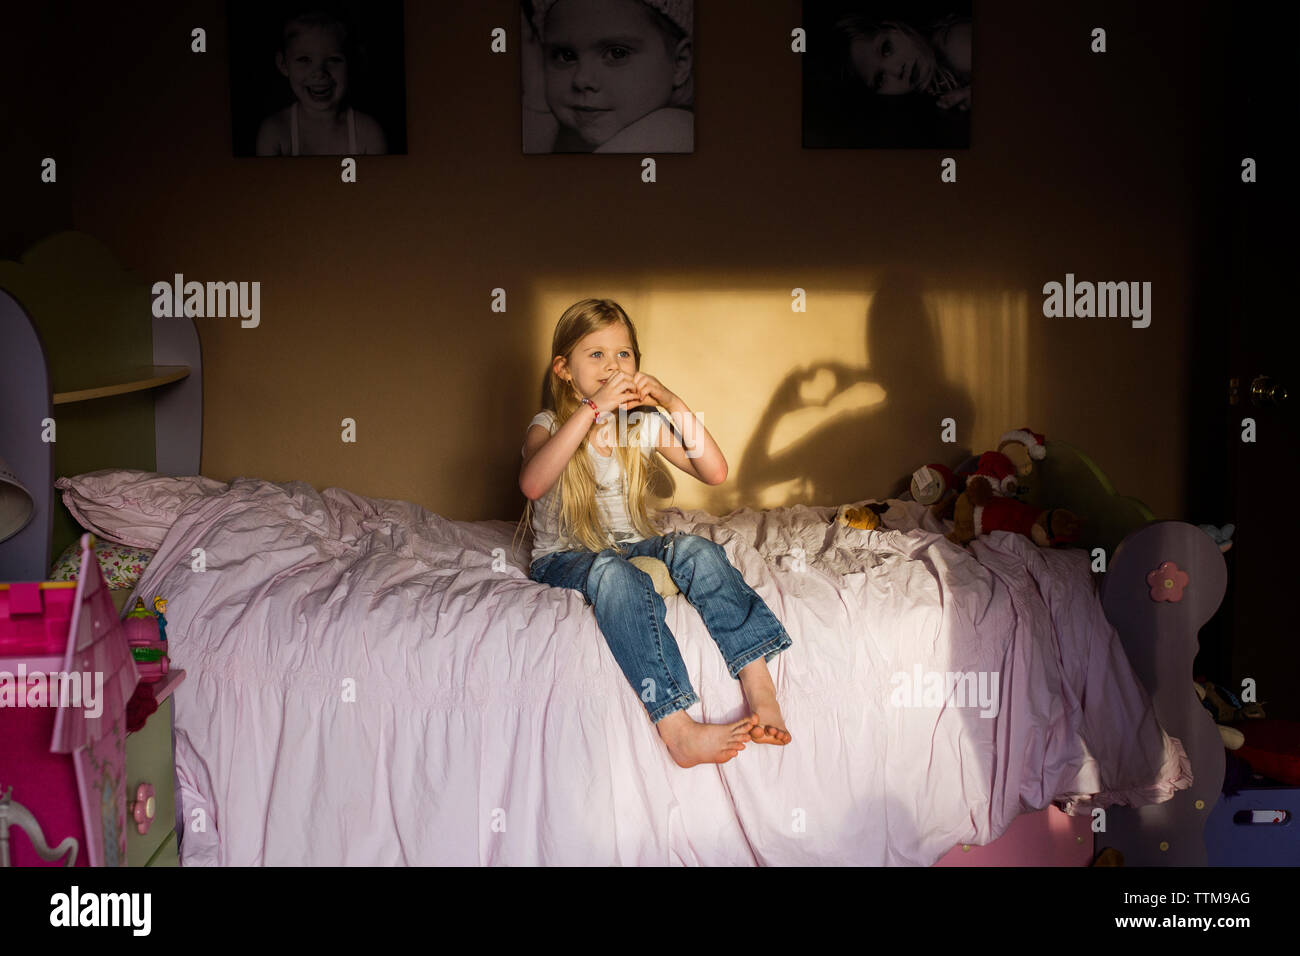 Girl making heart shape with hands while sitting on bed at home Banque D'Images